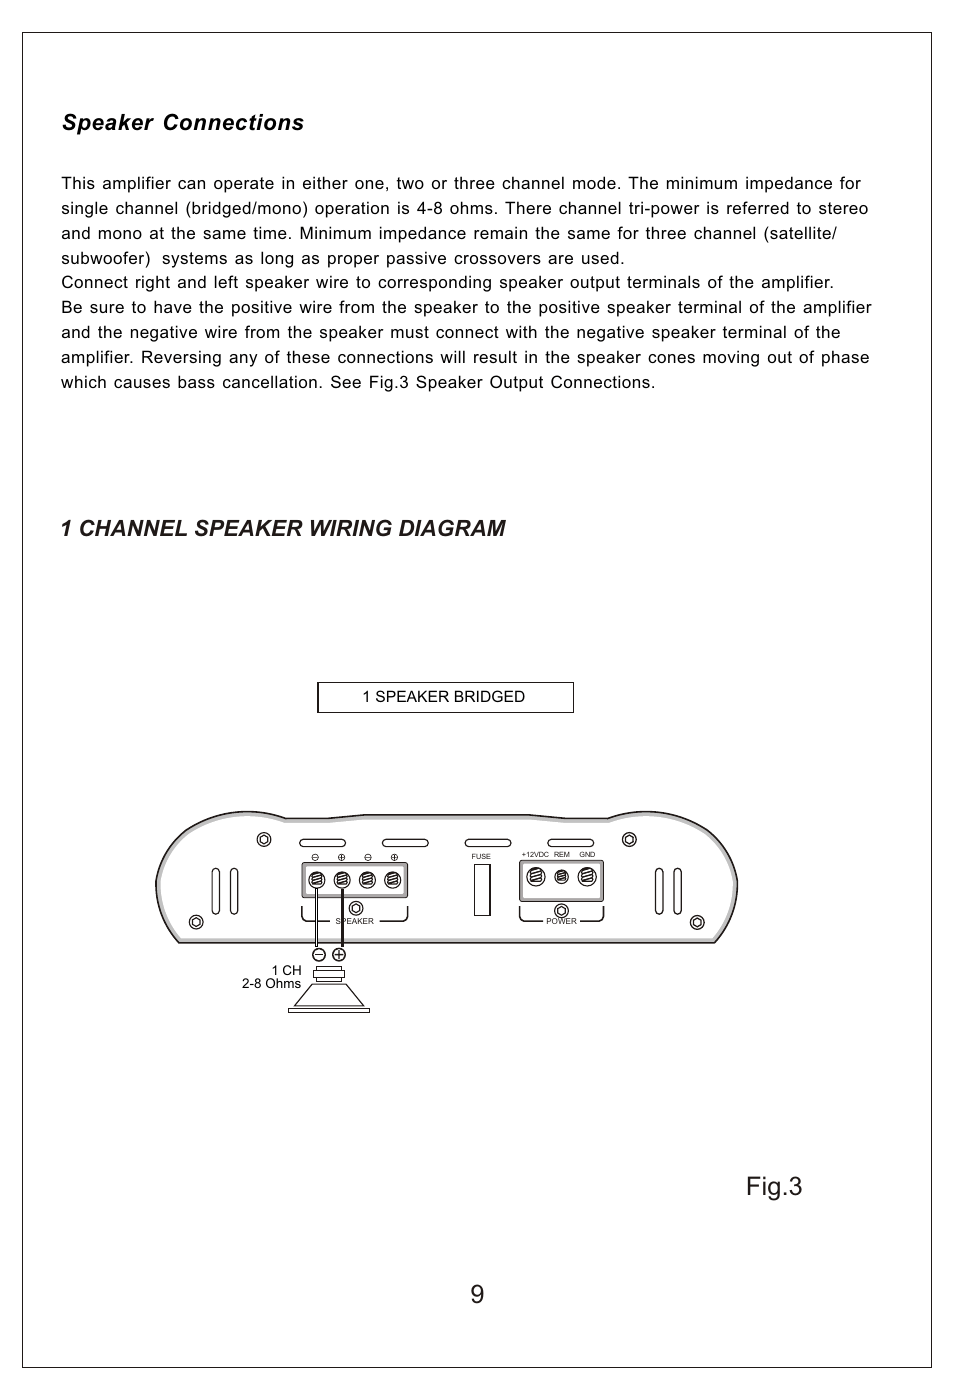 hight resolution of fig 3 1 channel speaker wiring diagram speaker connections bassworx ba150 2 user manual page 10 16